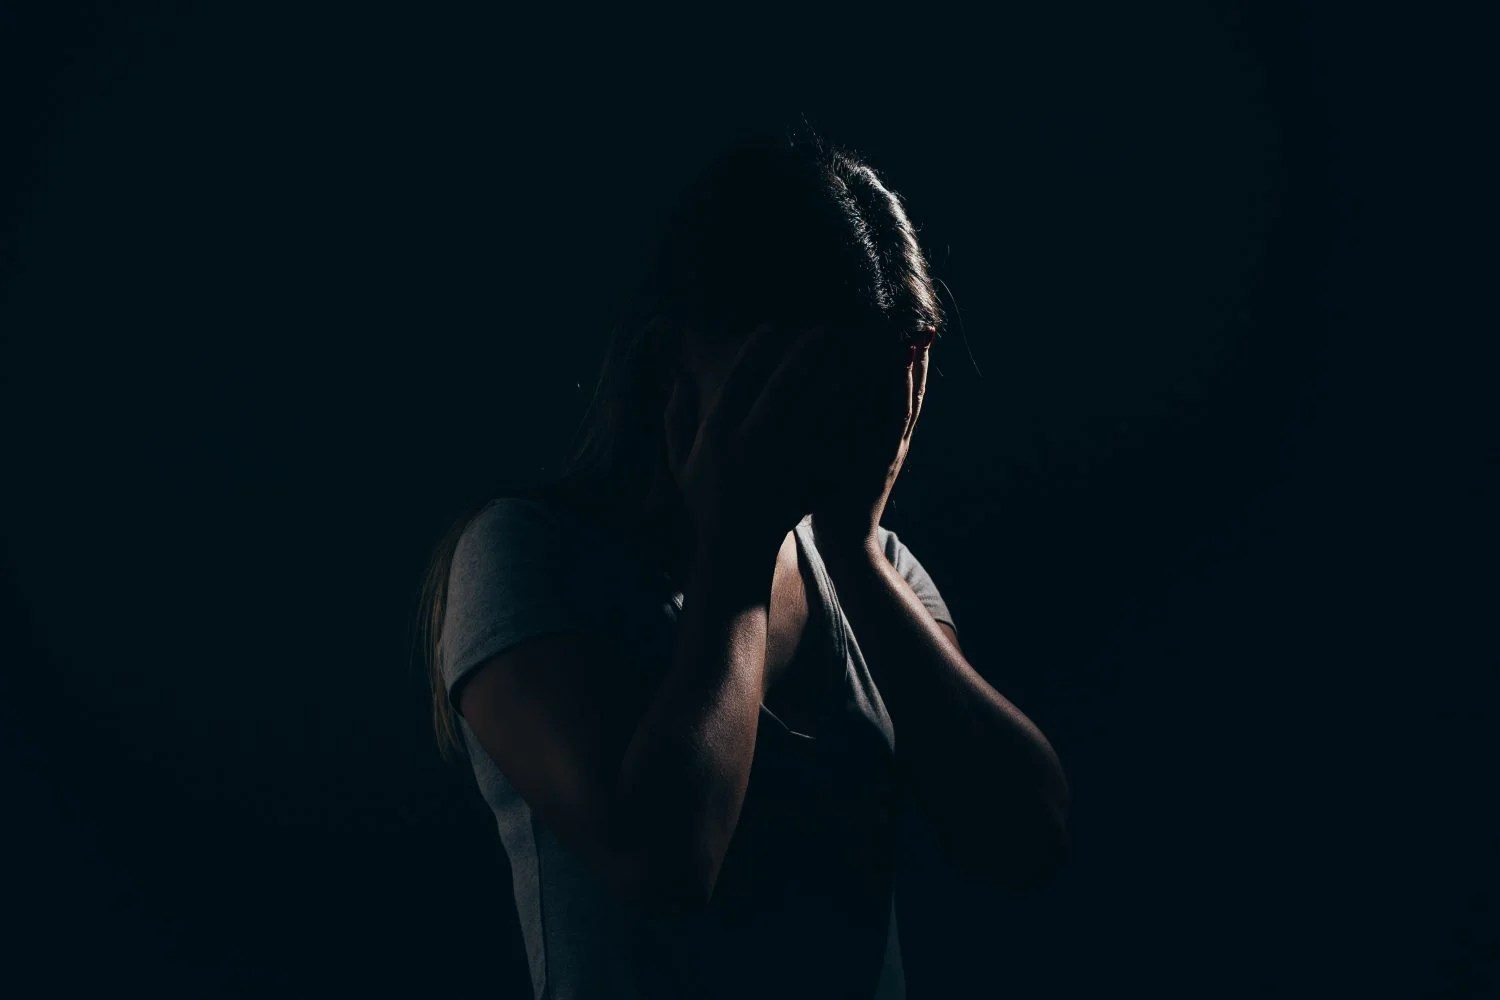 Sad woman in dark room. Depression and anxiety disorder concept